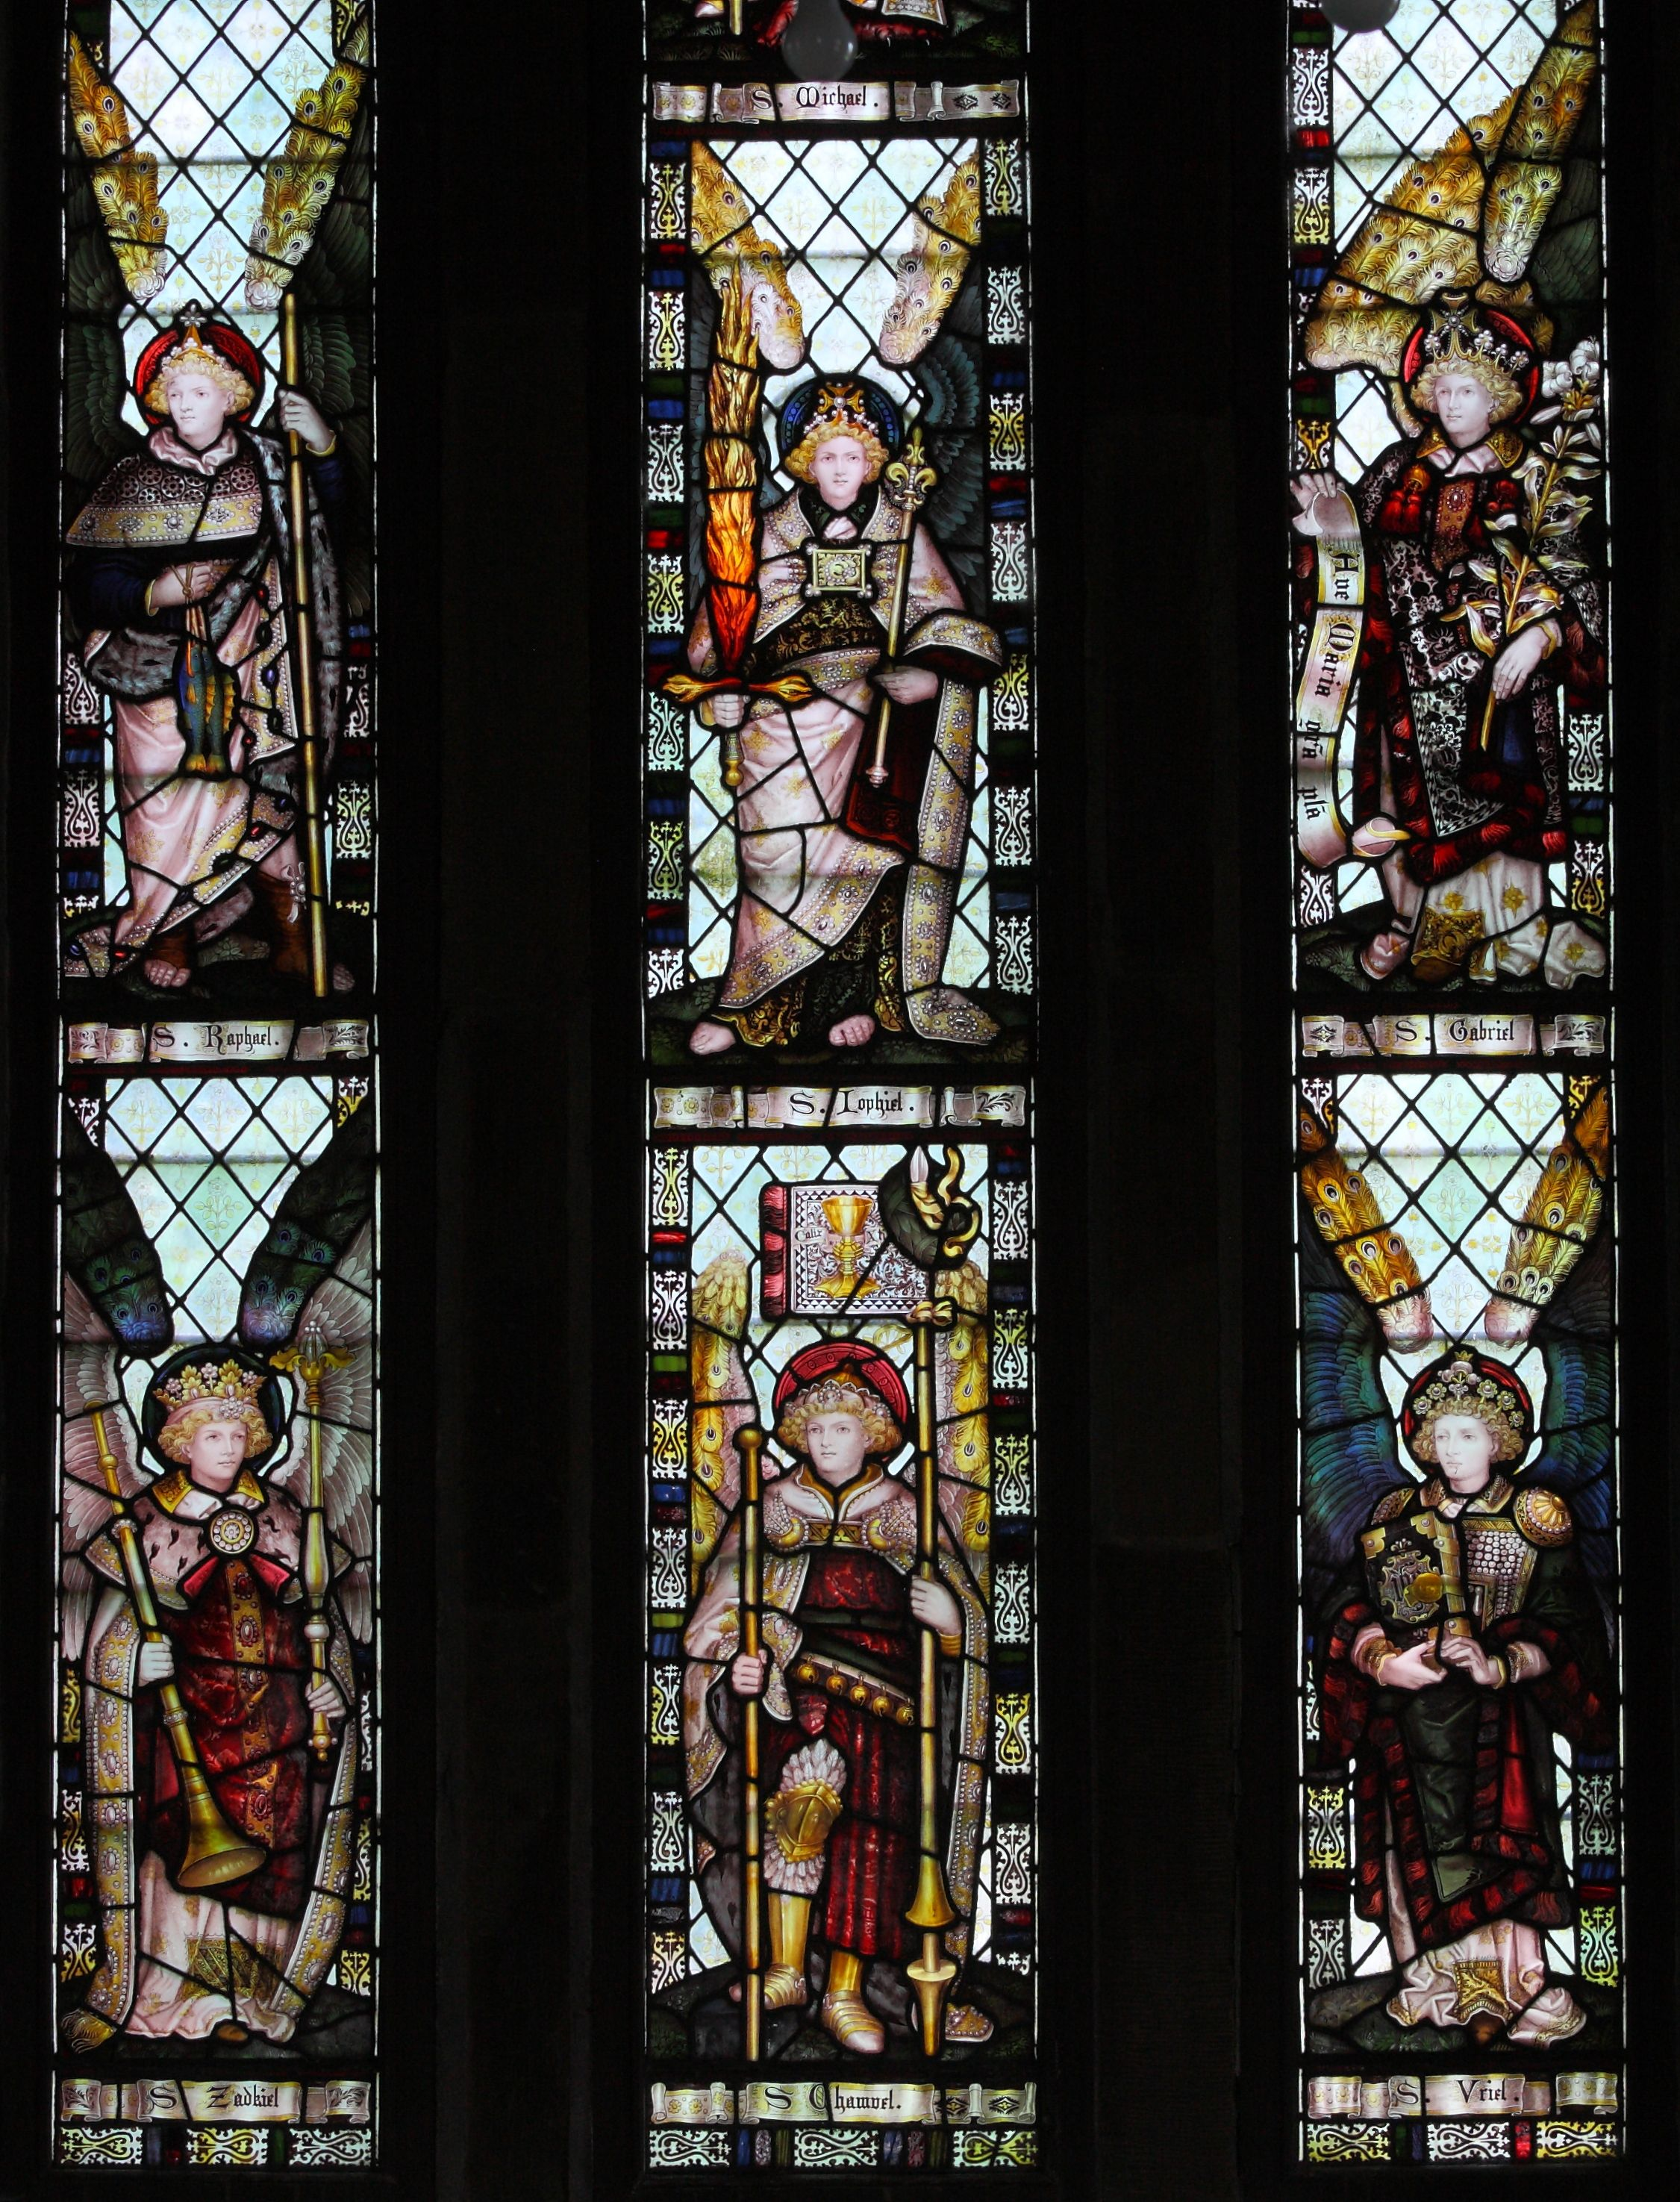 North transept window by CE Kempe 1891 showing the seven archangels Michael, Uriel, Gabriel, Iophiel, Raphael, Zadkiel, Chamuel - six of them shown here, Michael is at the top but a hanging light is in the way   https://farm5.staticflickr.com/4141/4781325020_0a5a42e880_o.jpg